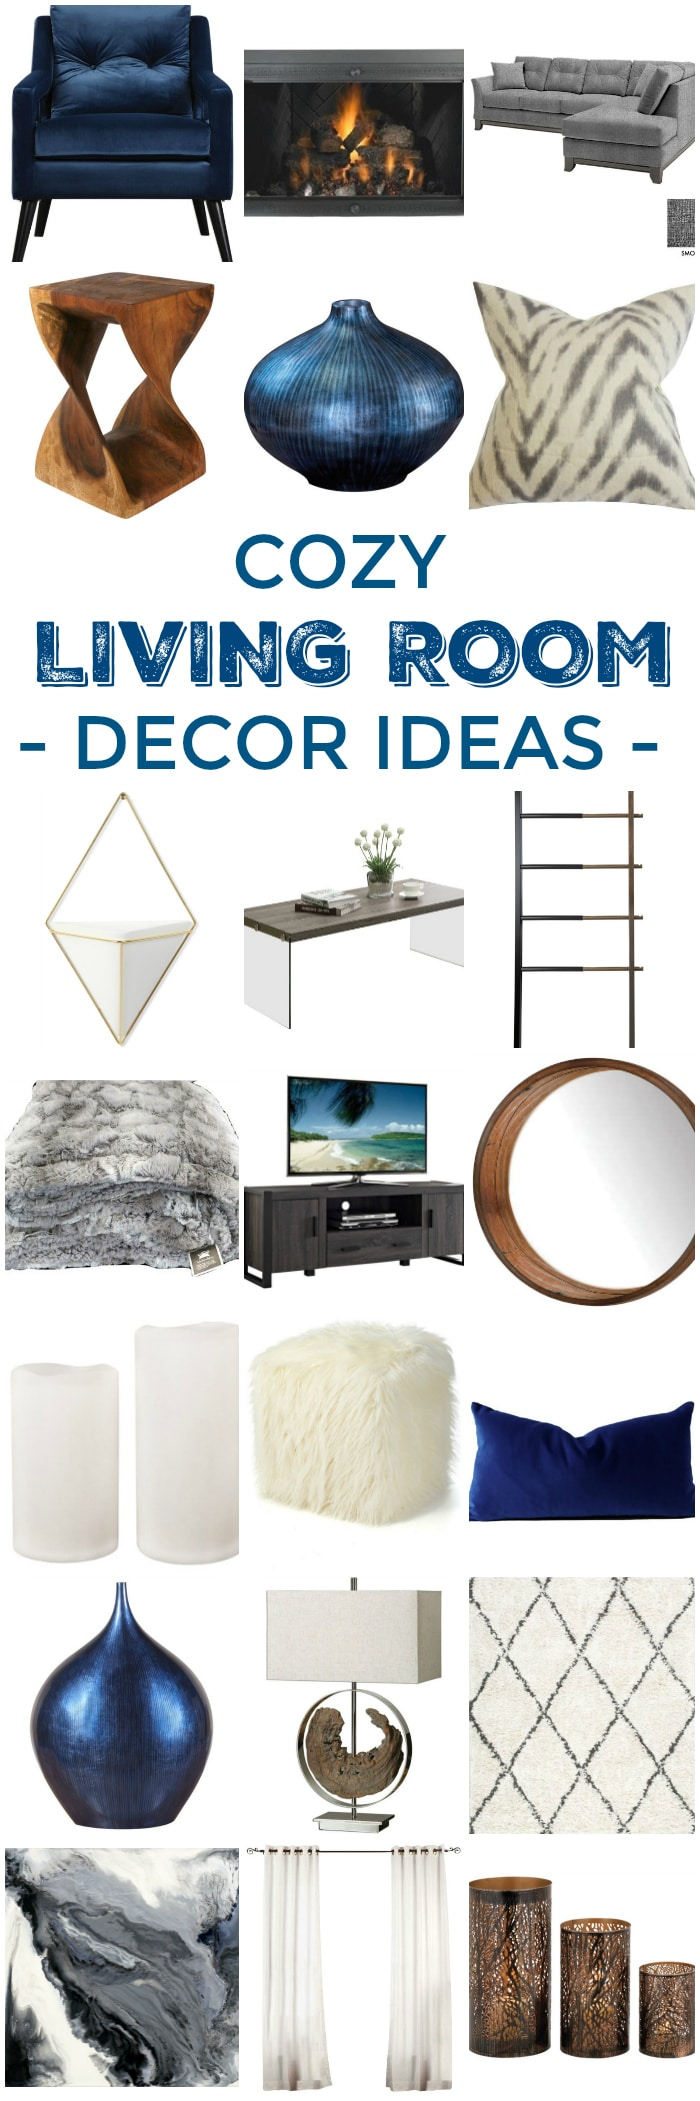 6 decor tips how to create a cozy living room setting for Cozy family room decorating ideas